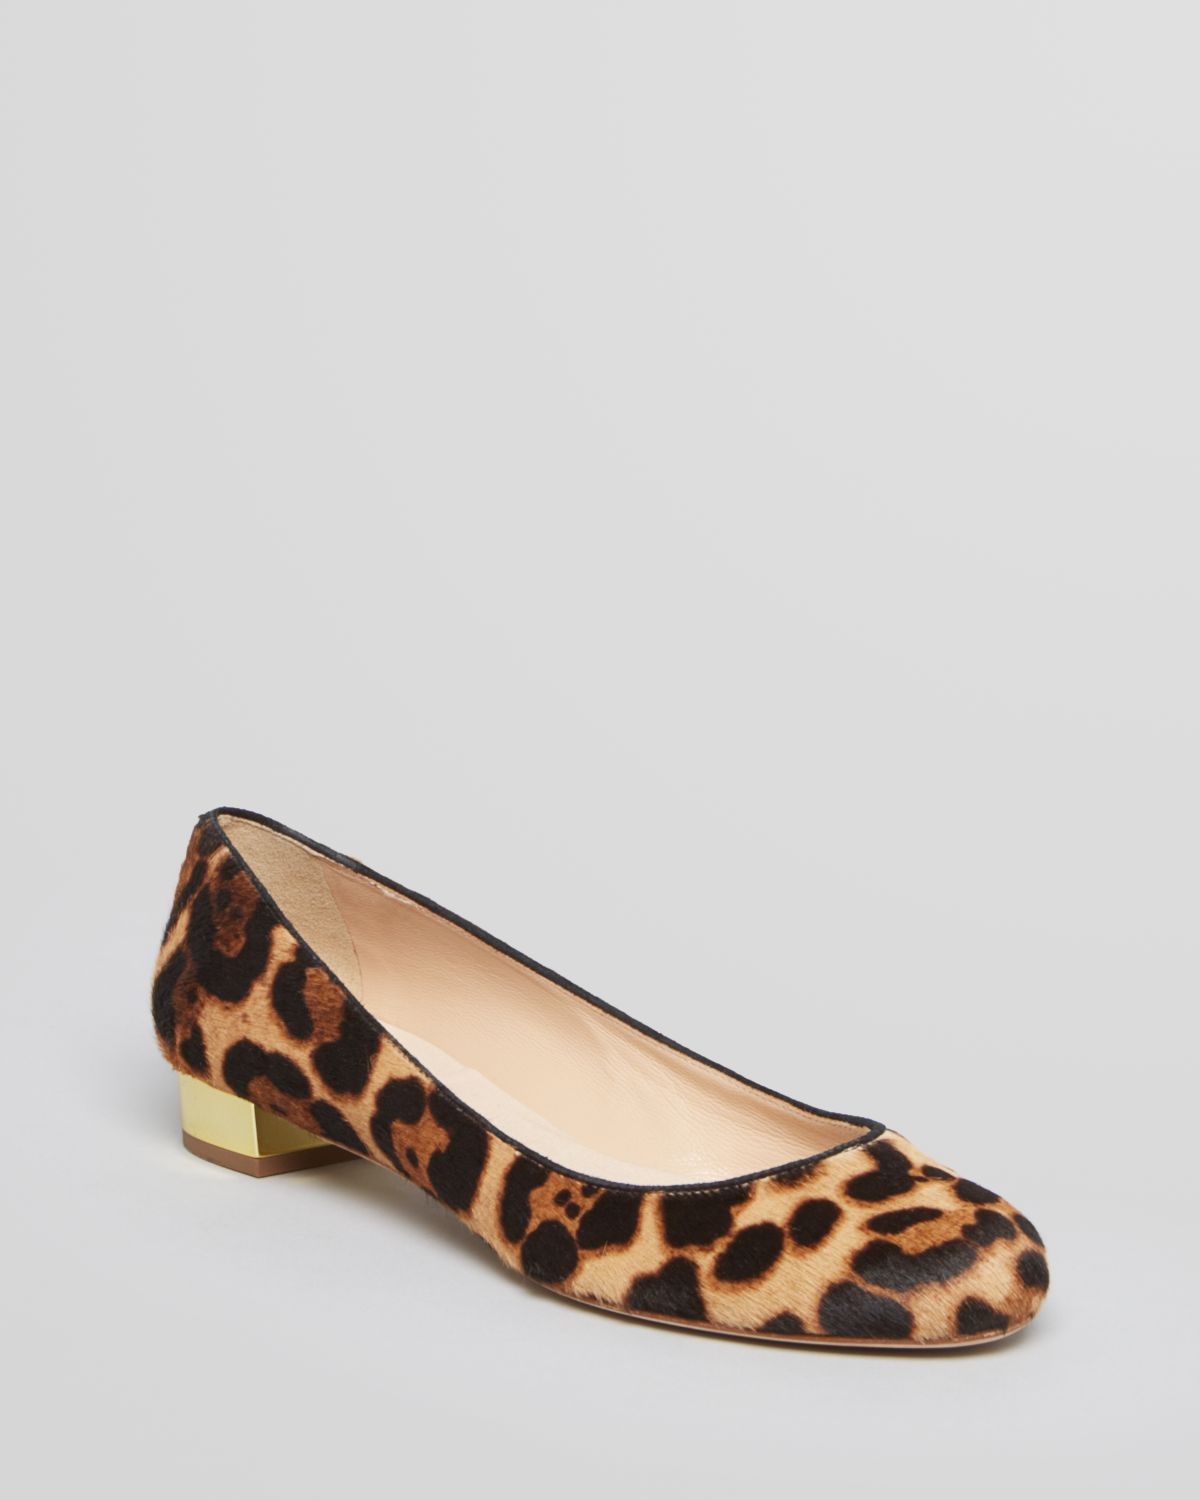 Temple Leopard-Print Flats $ EXCLUSIVE TO THE BAY. Quick View. COLE HAAN. Tali Bow Leather Espadrilles $ Designer. Quick View. Tali Modern Bow Leather Ballet Flats $ Quick View. COLE HAAN. Piper Leopard Leather Mules $ Quick View. CORE LIFE. Alex Pointy Ballerina Flats $